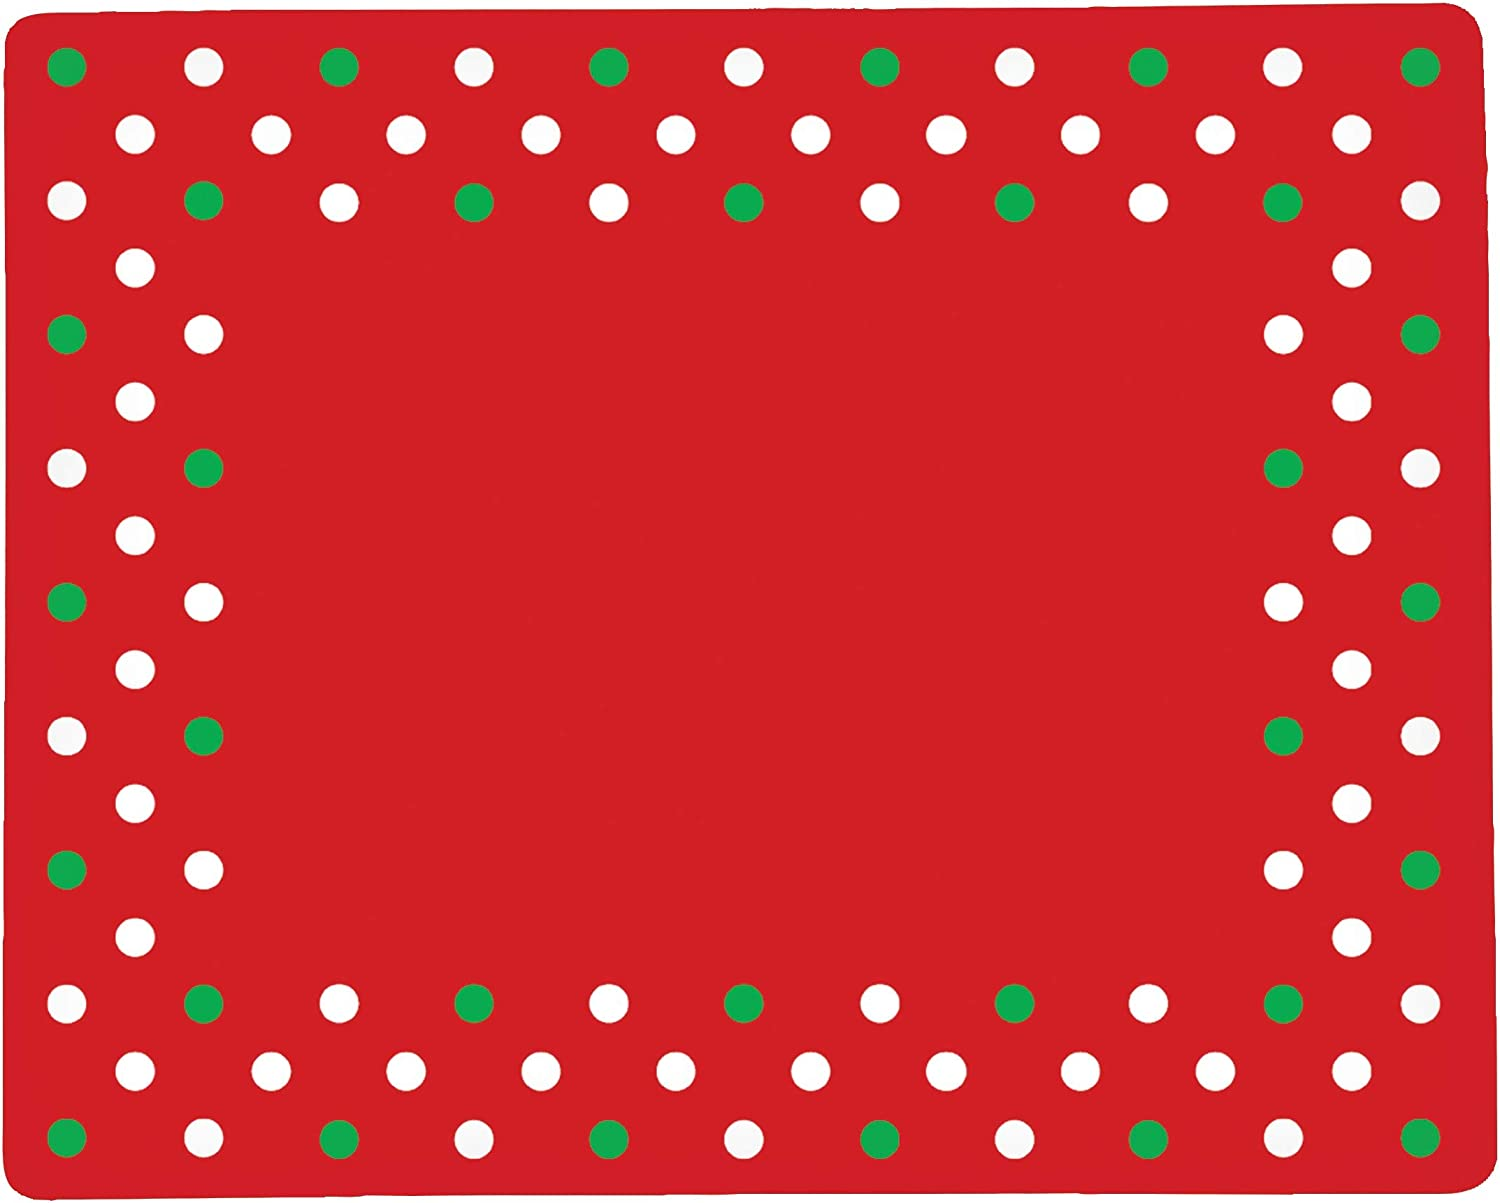 C&F Home Xmas Polka Dots 12.75'' x 16'' Hardboard Placemat Set of 6 Wooden Christmas Holiday Winter Table Mat for Kitchen Dining Table Placemat Set of 6 Red